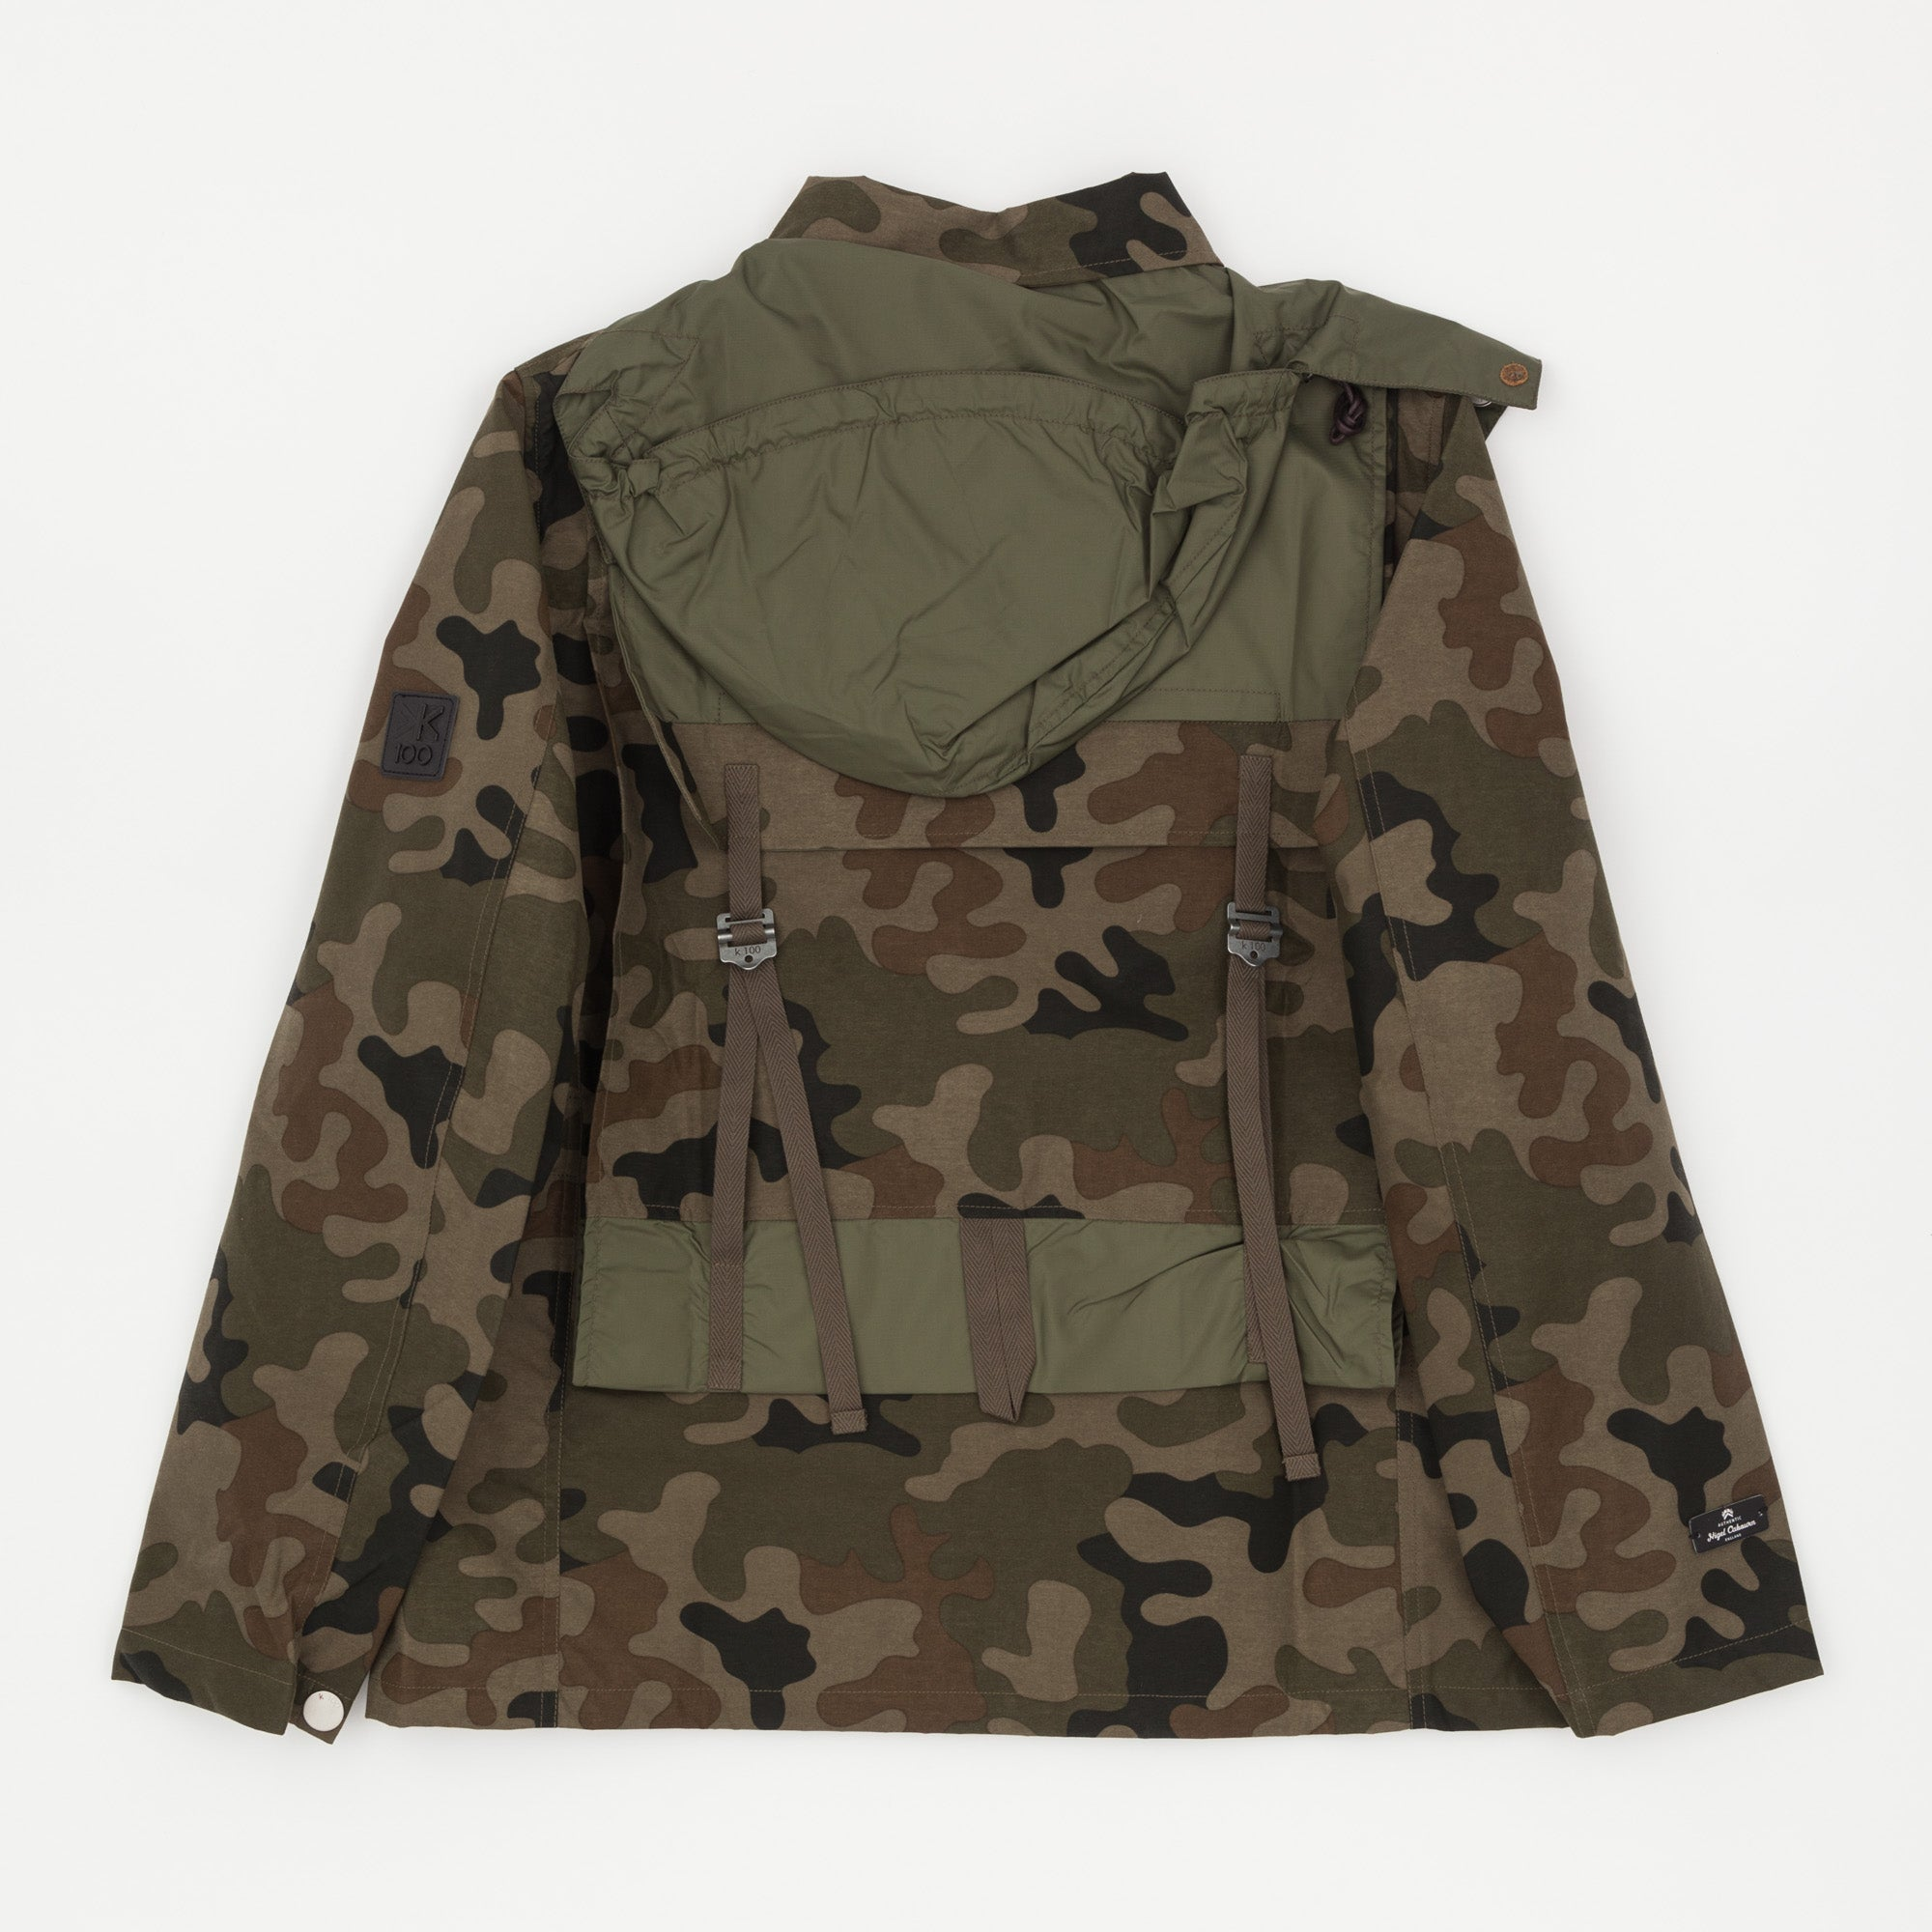 Nigel Cabourn K100 Mountain Rucksack Jacket